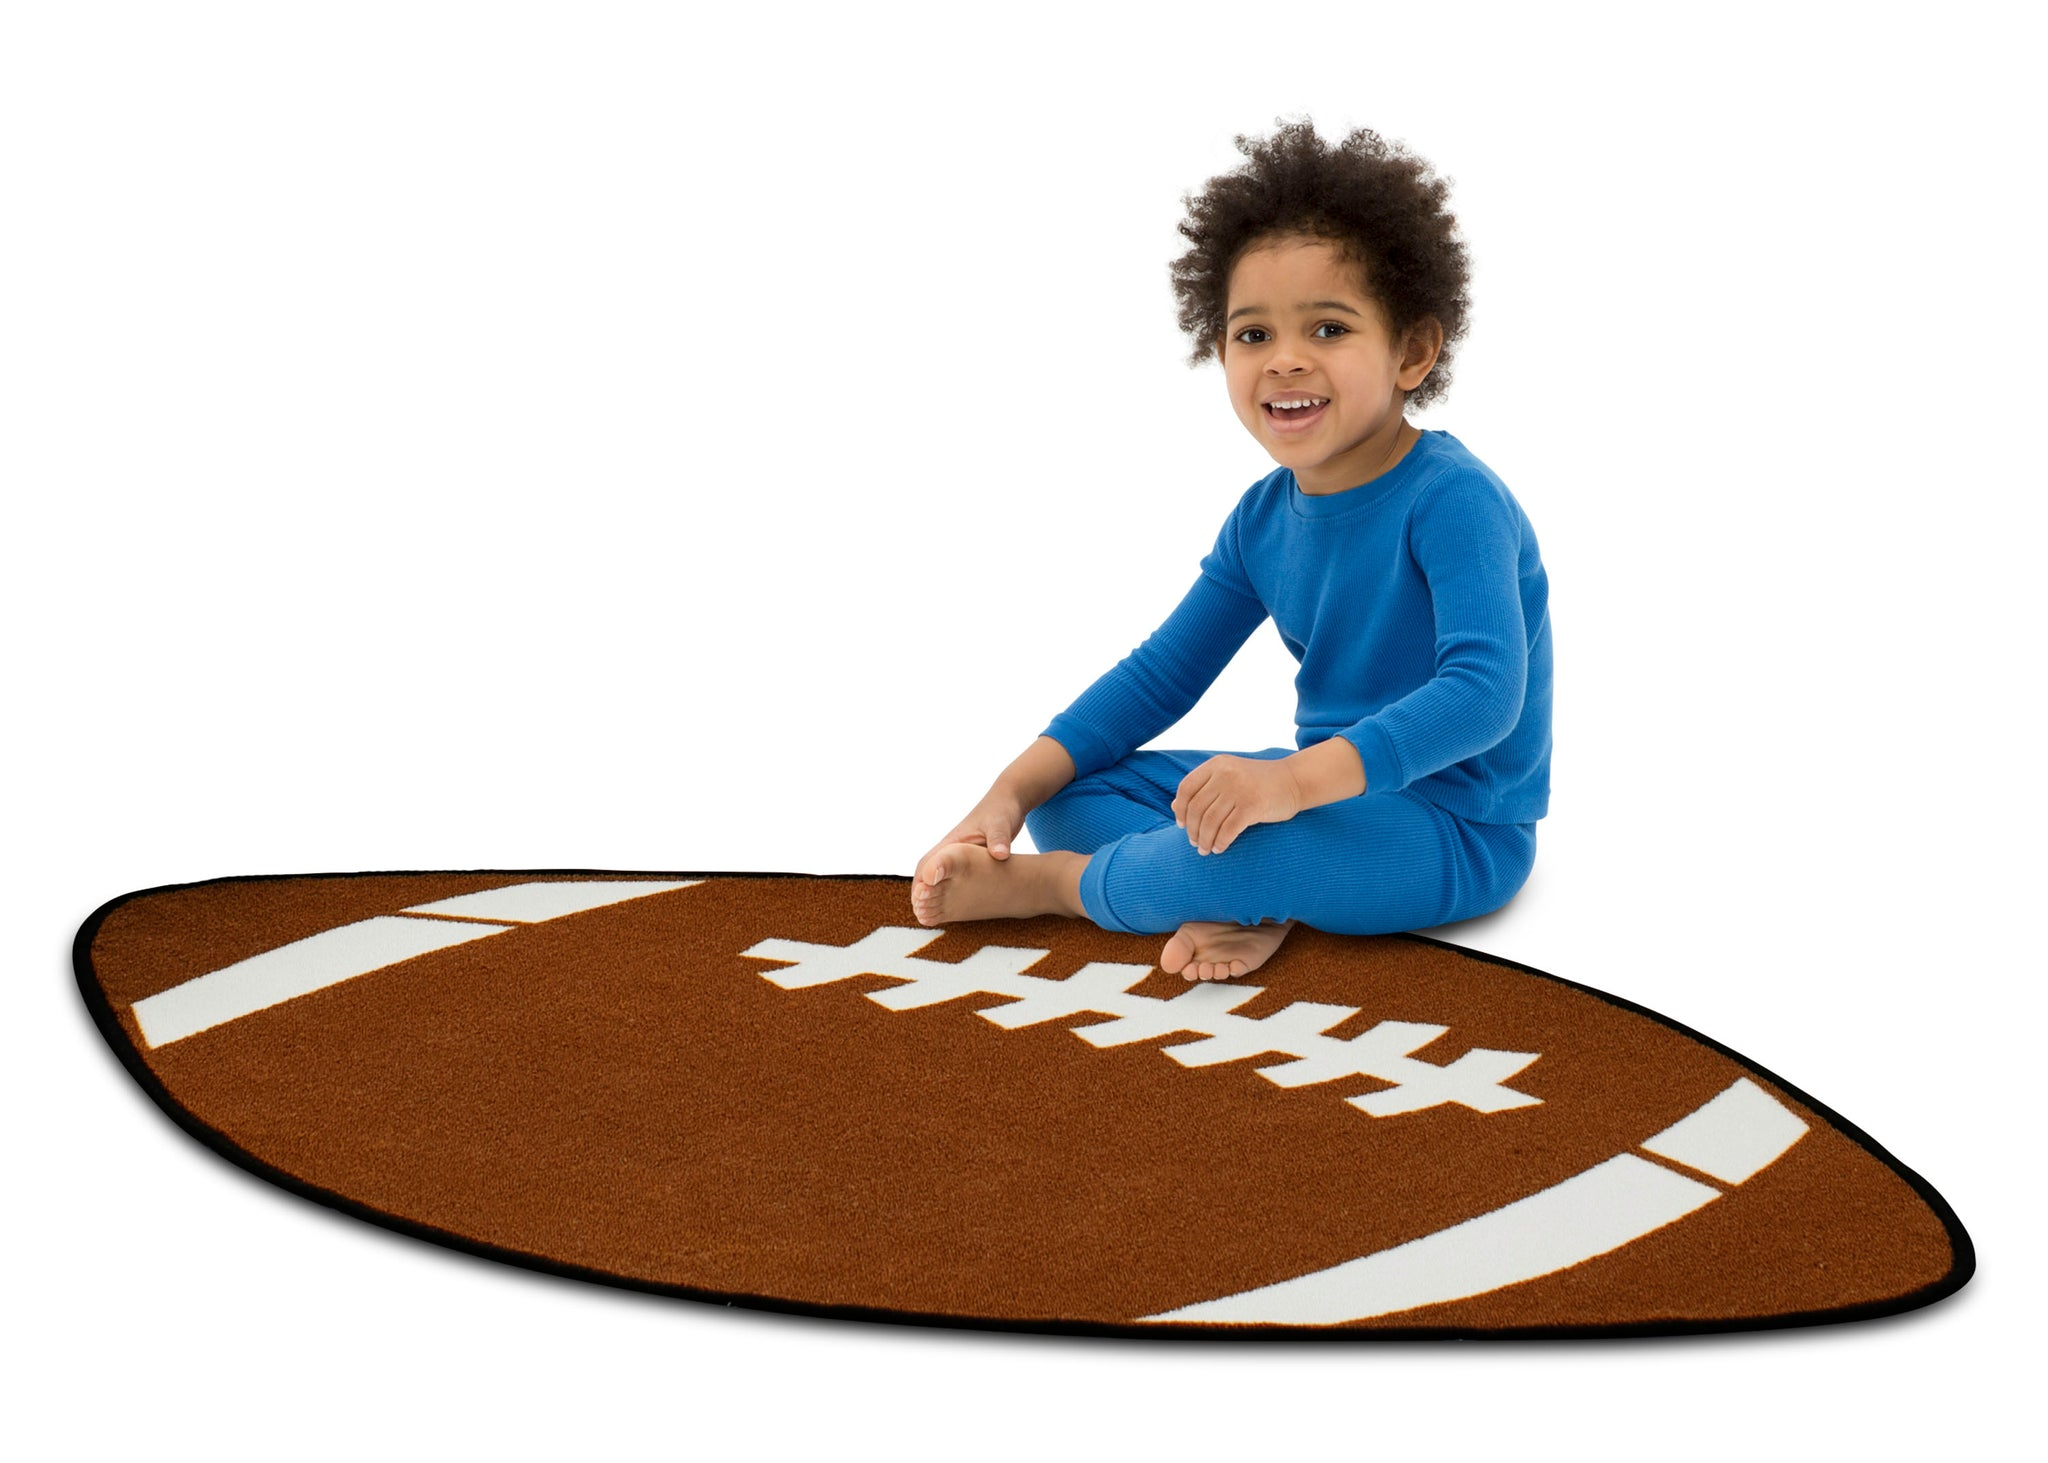 Delta Children Football (3204) Non-Slip Area Rug for Boys, Model View